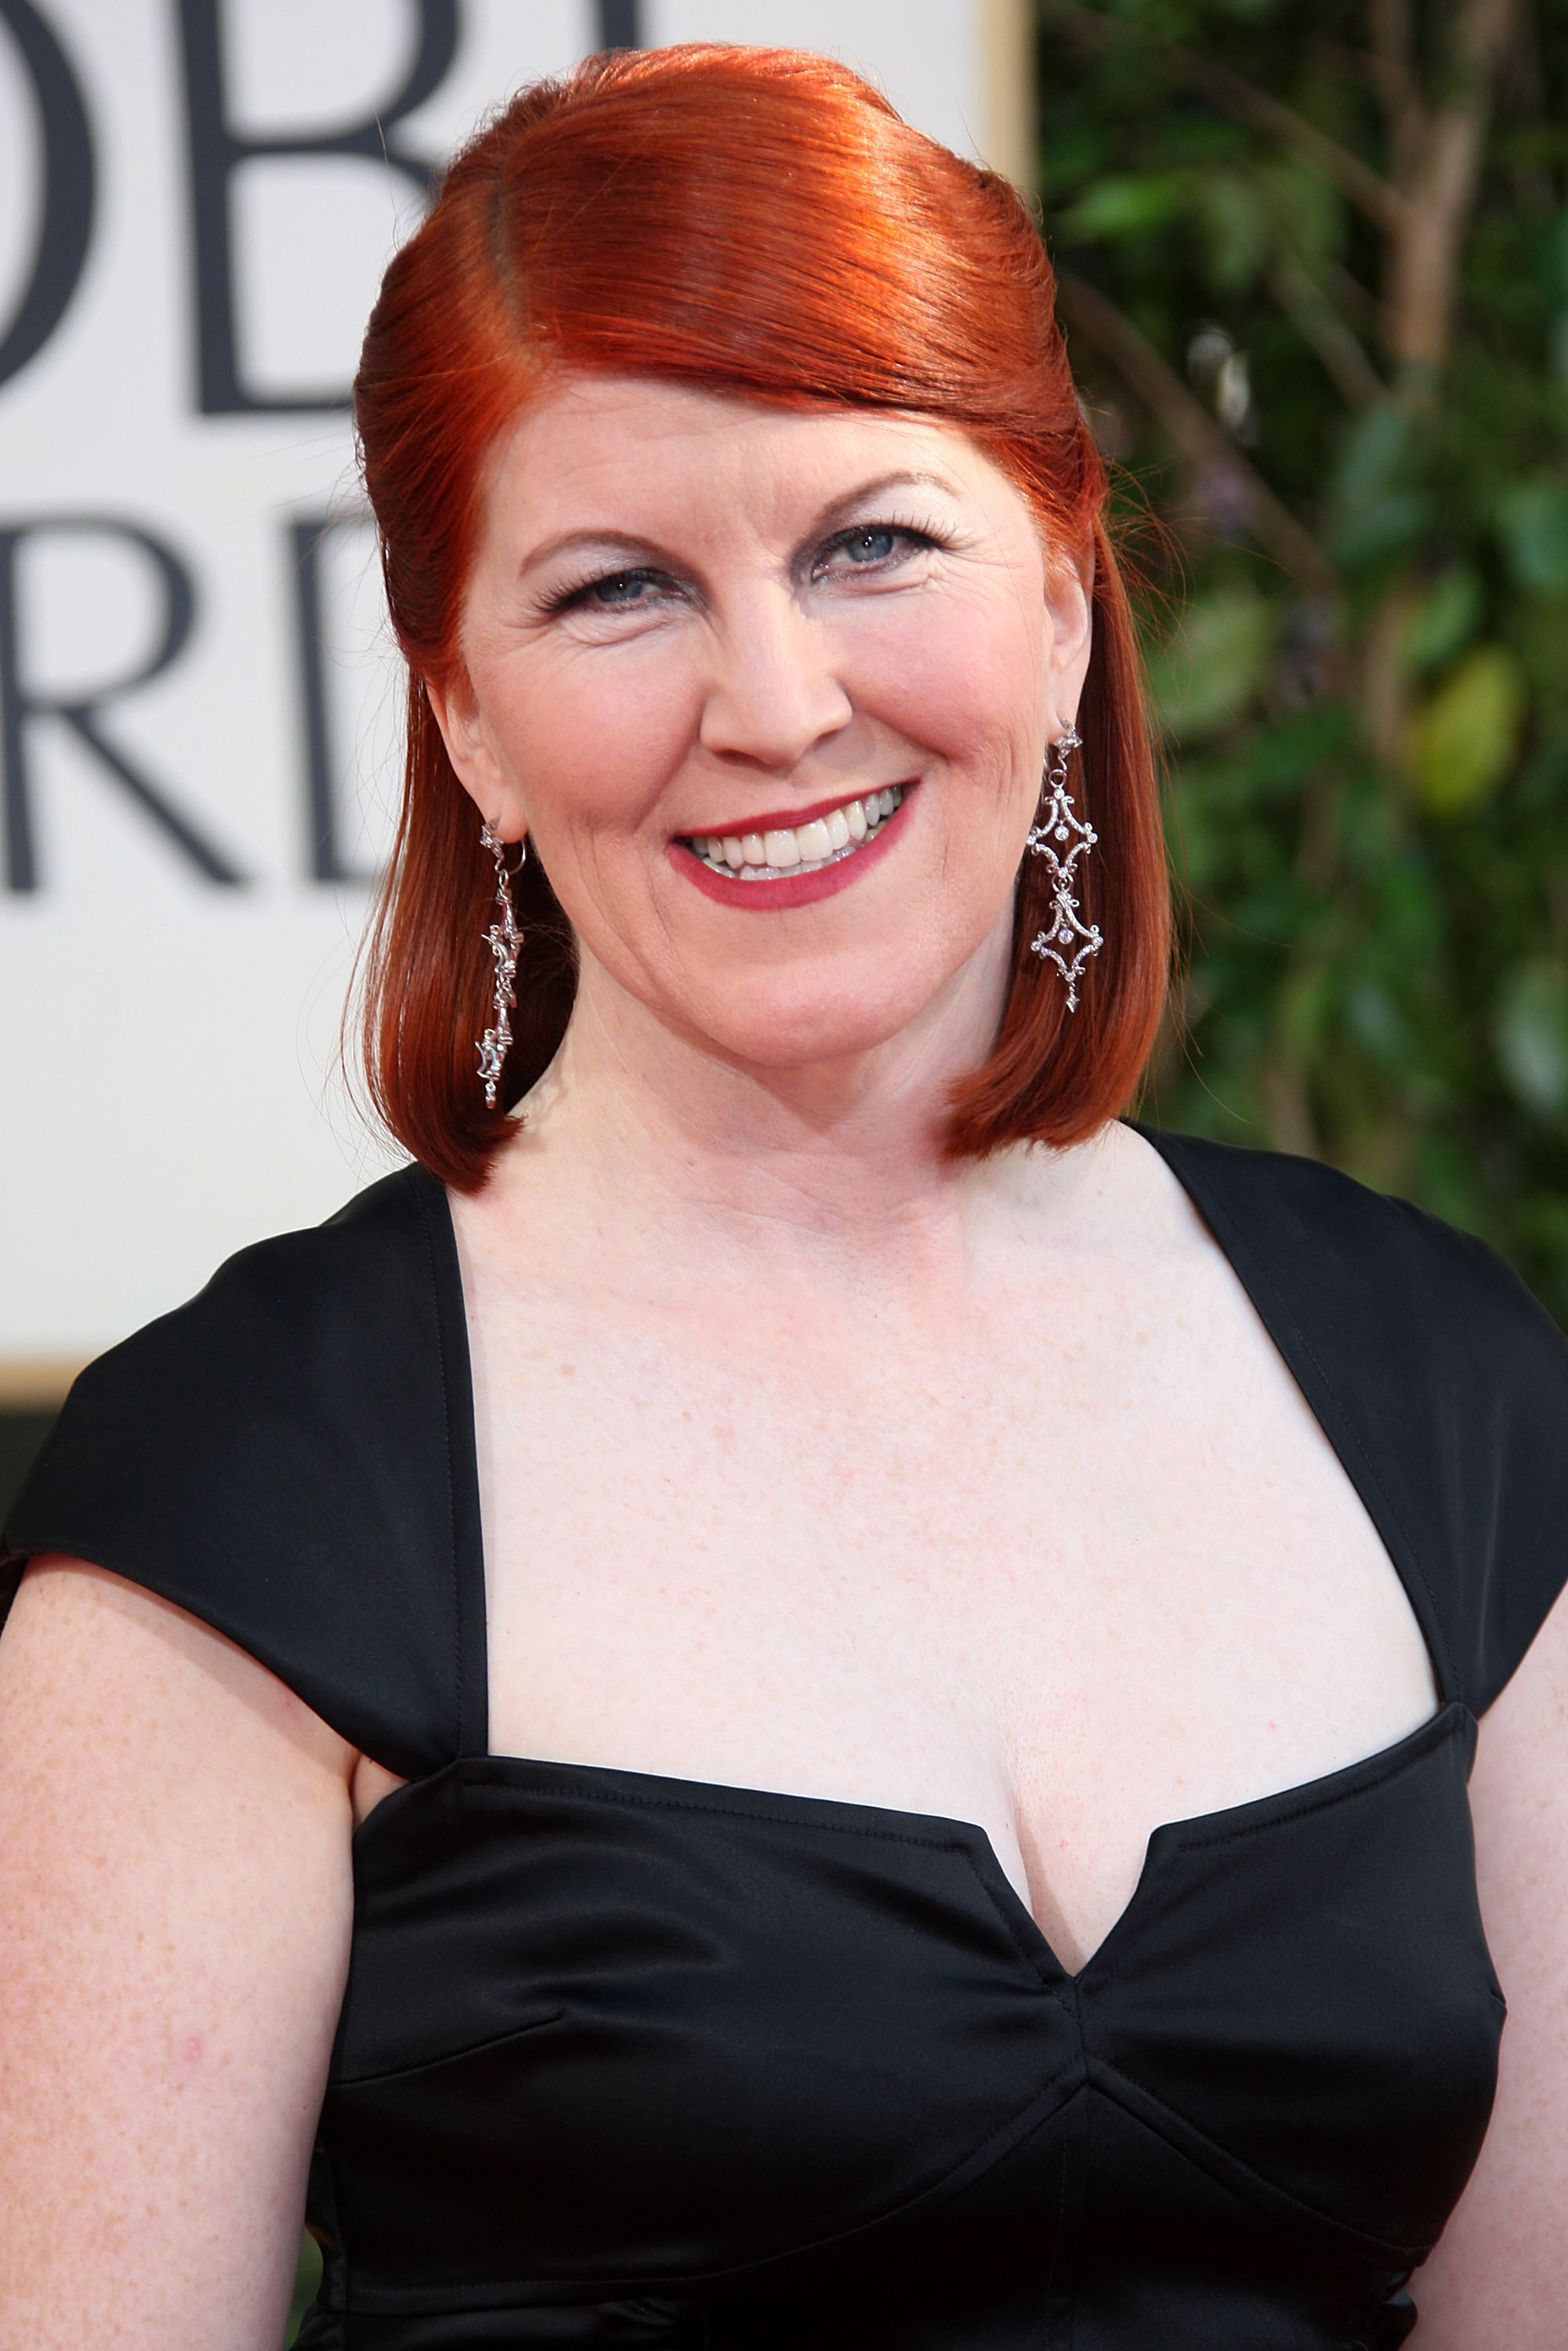 Kate Flannery nudes (55 pics) Erotica, Snapchat, see through